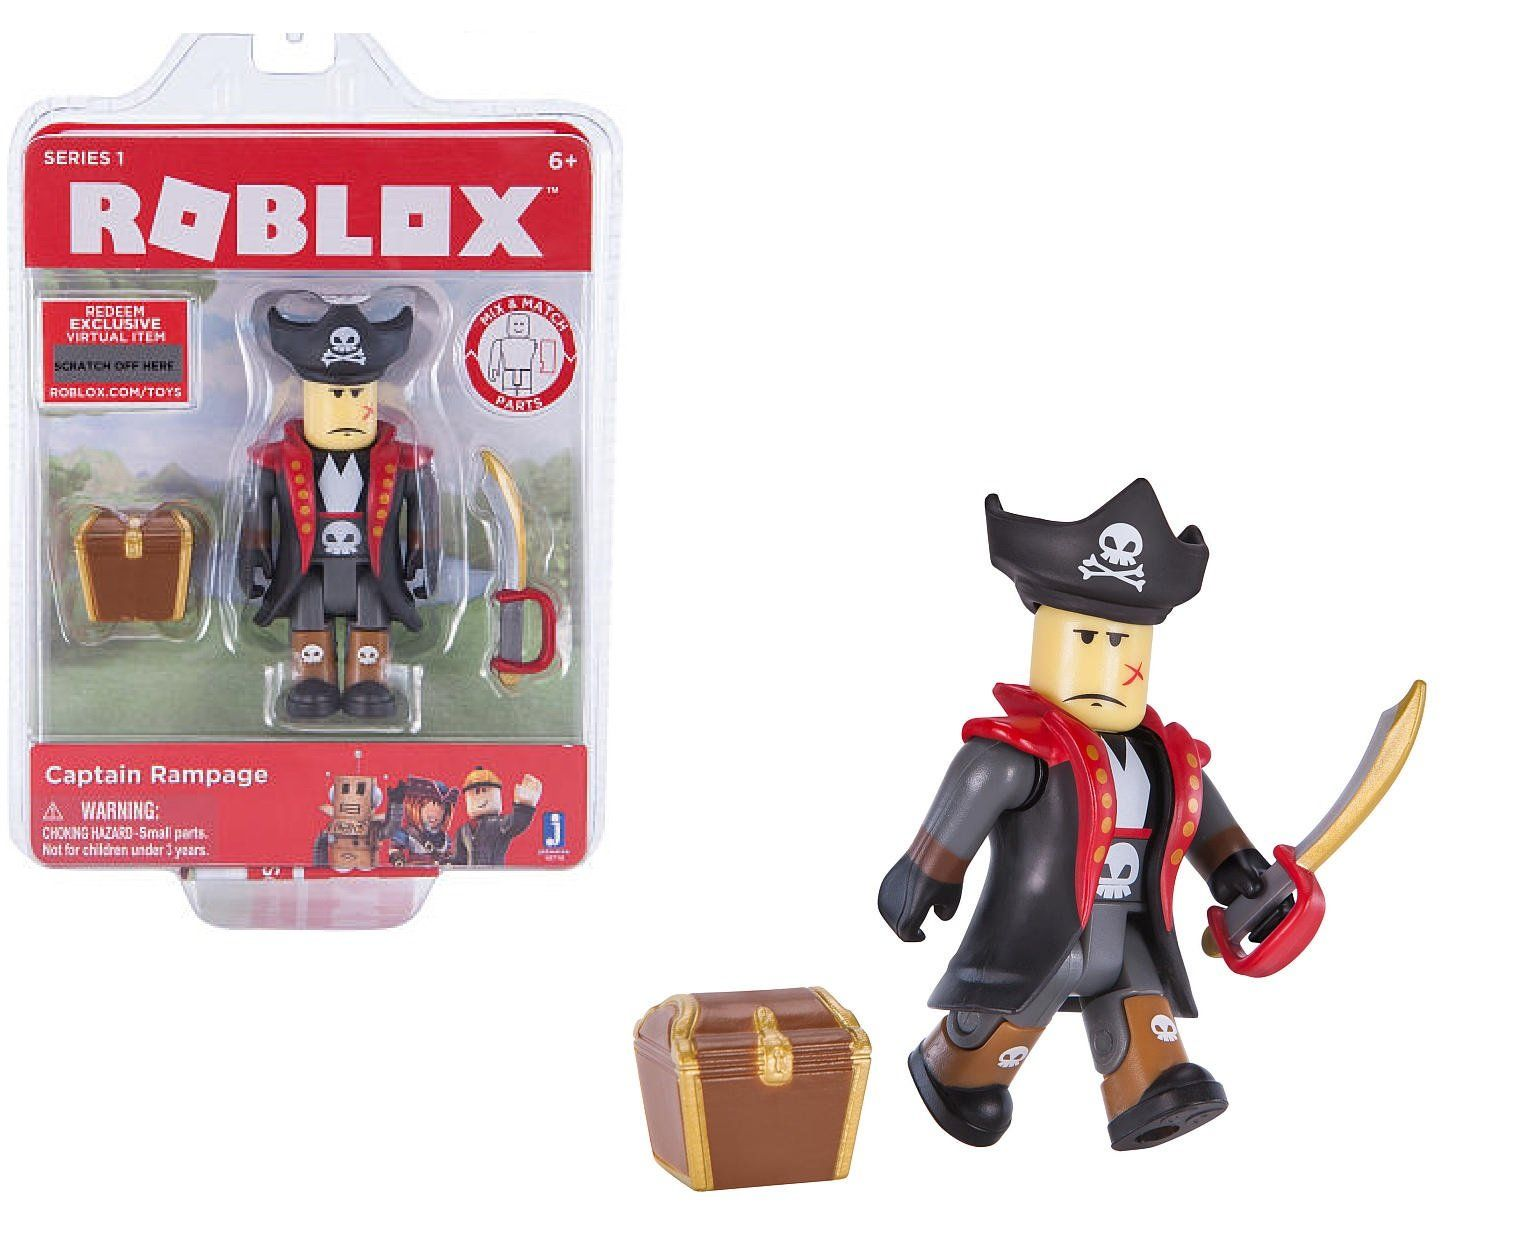 Roblox Series 1 Action Figure - CAPTAIN RAMPAGE - Comes with